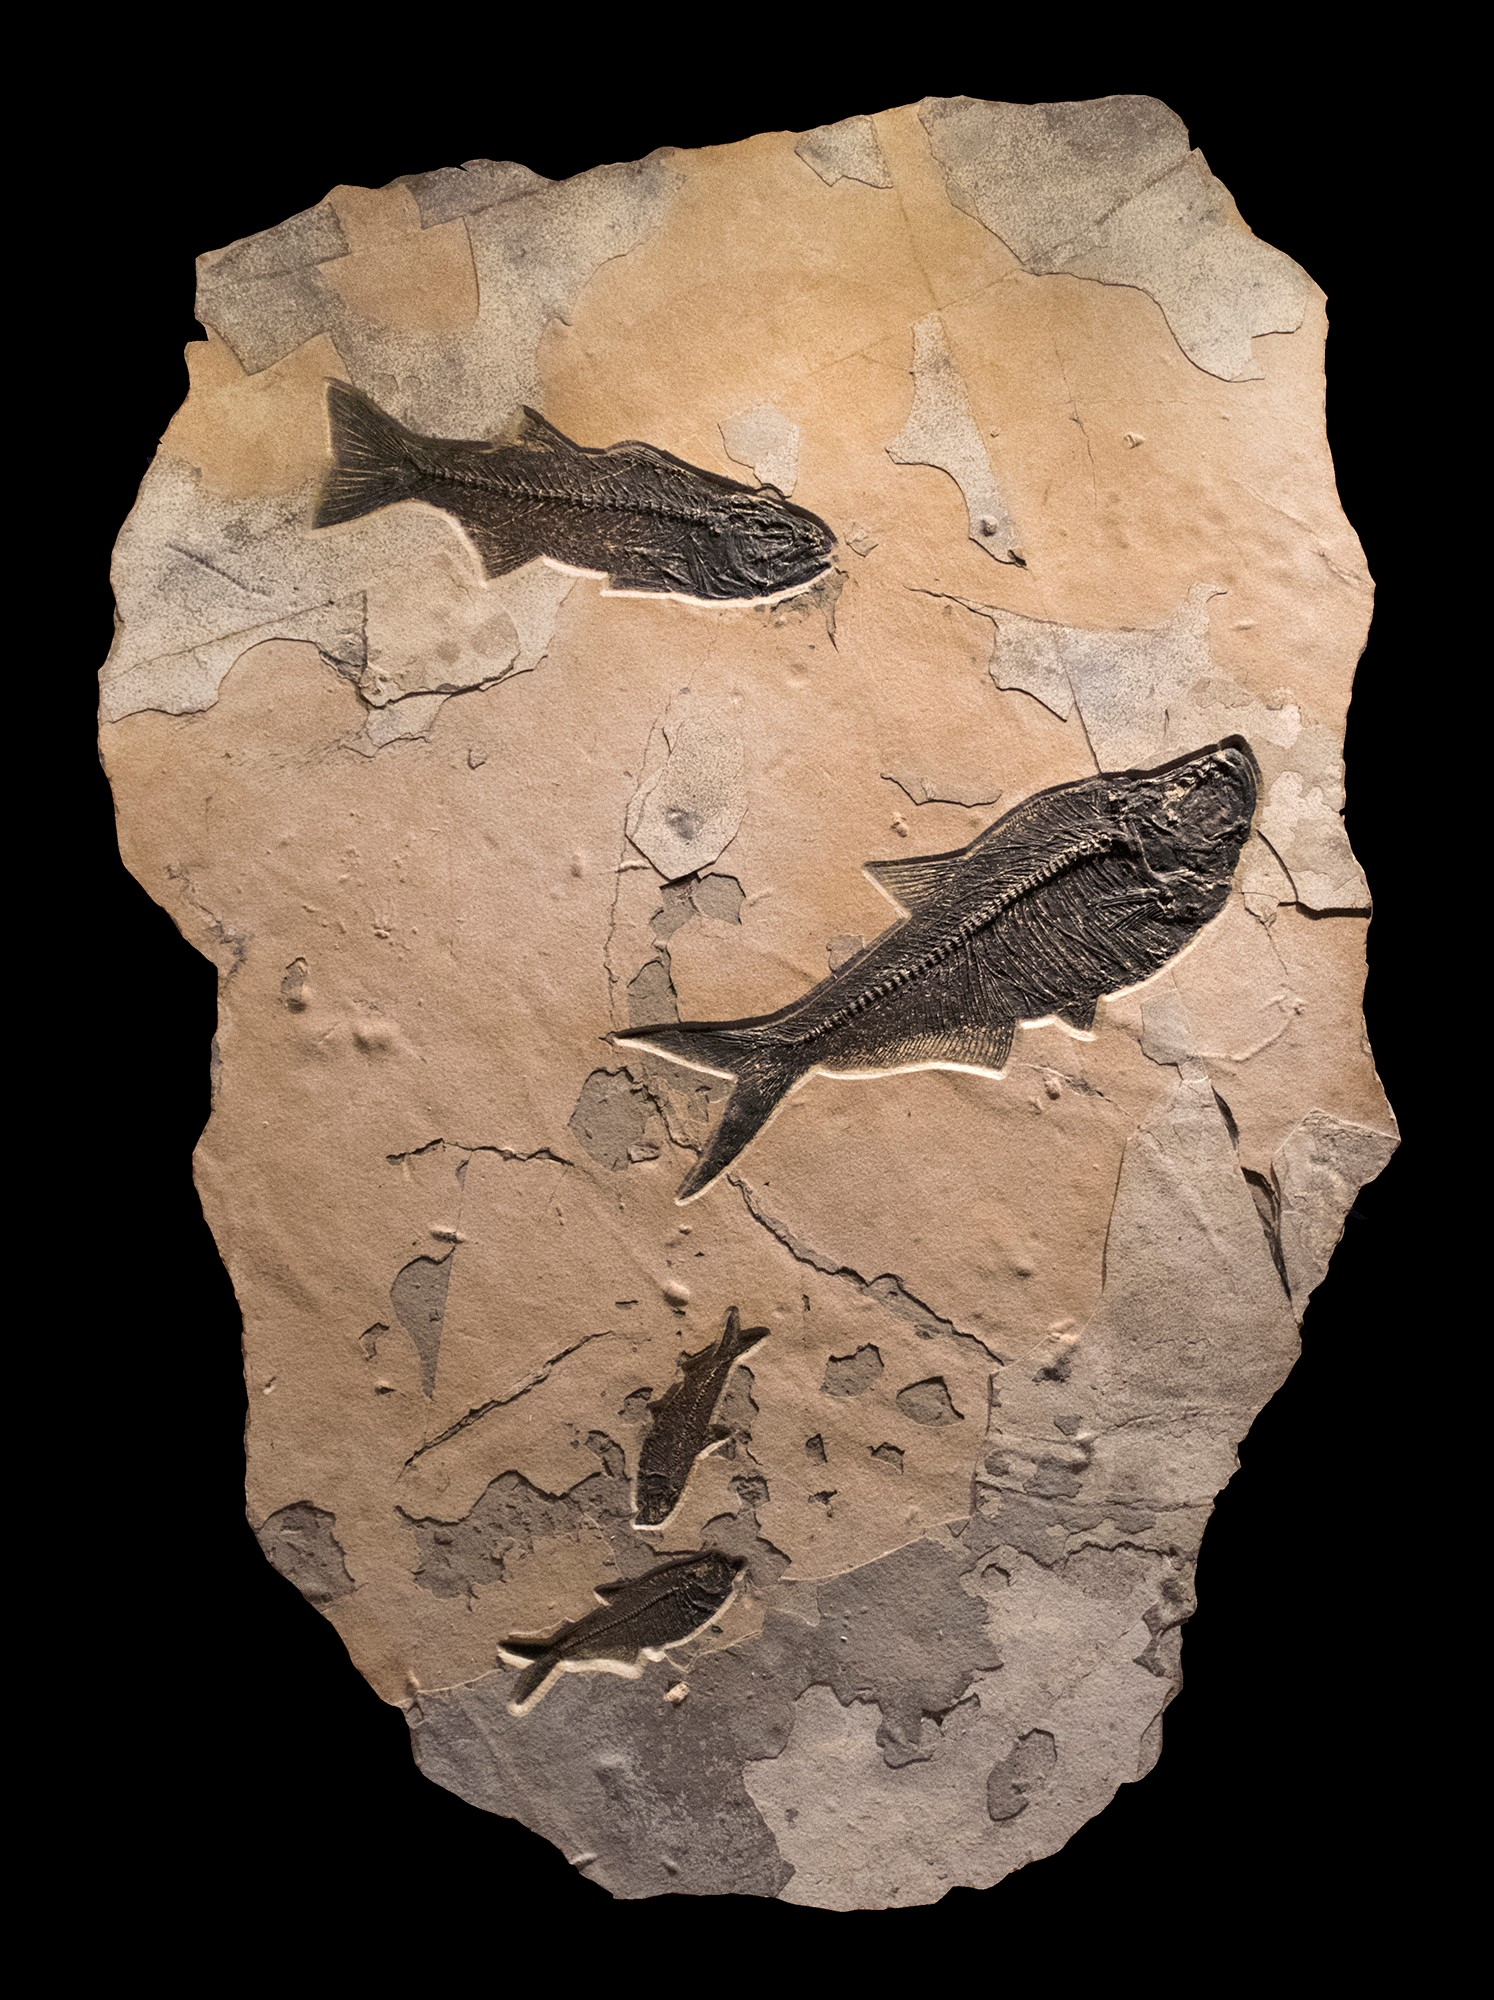 Fossil Collector Mural 02_Q110622001CM